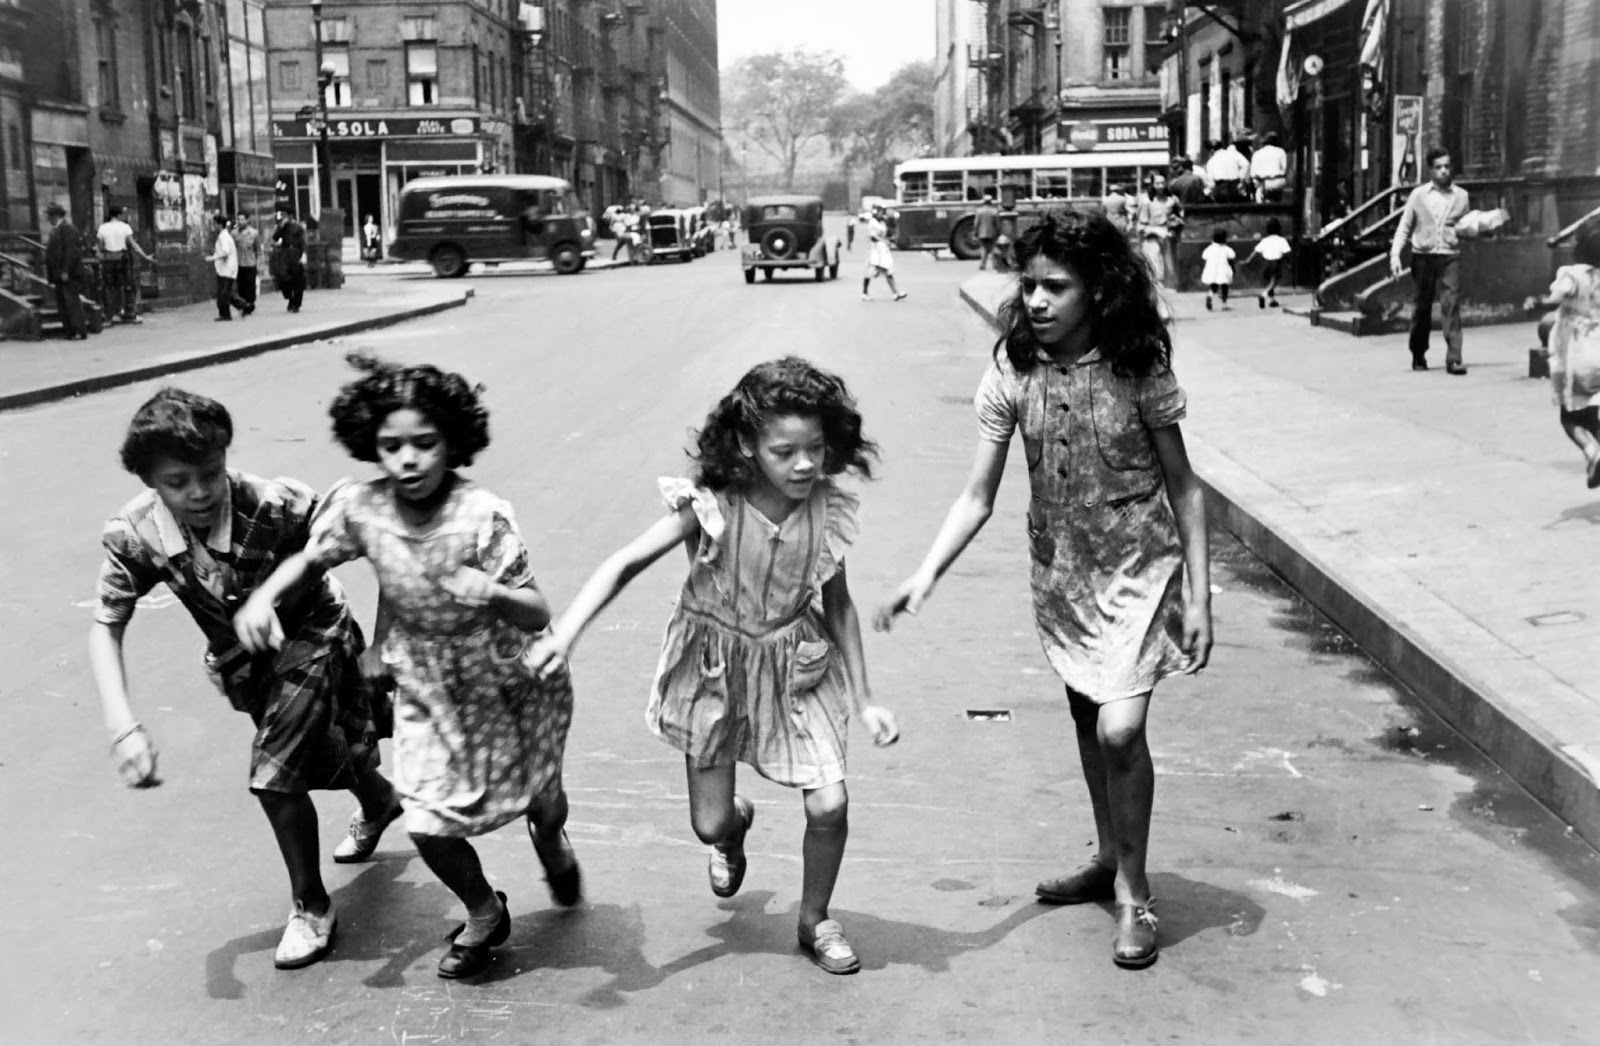 Helen Levitt - Four girls running in the street, ca. 1940